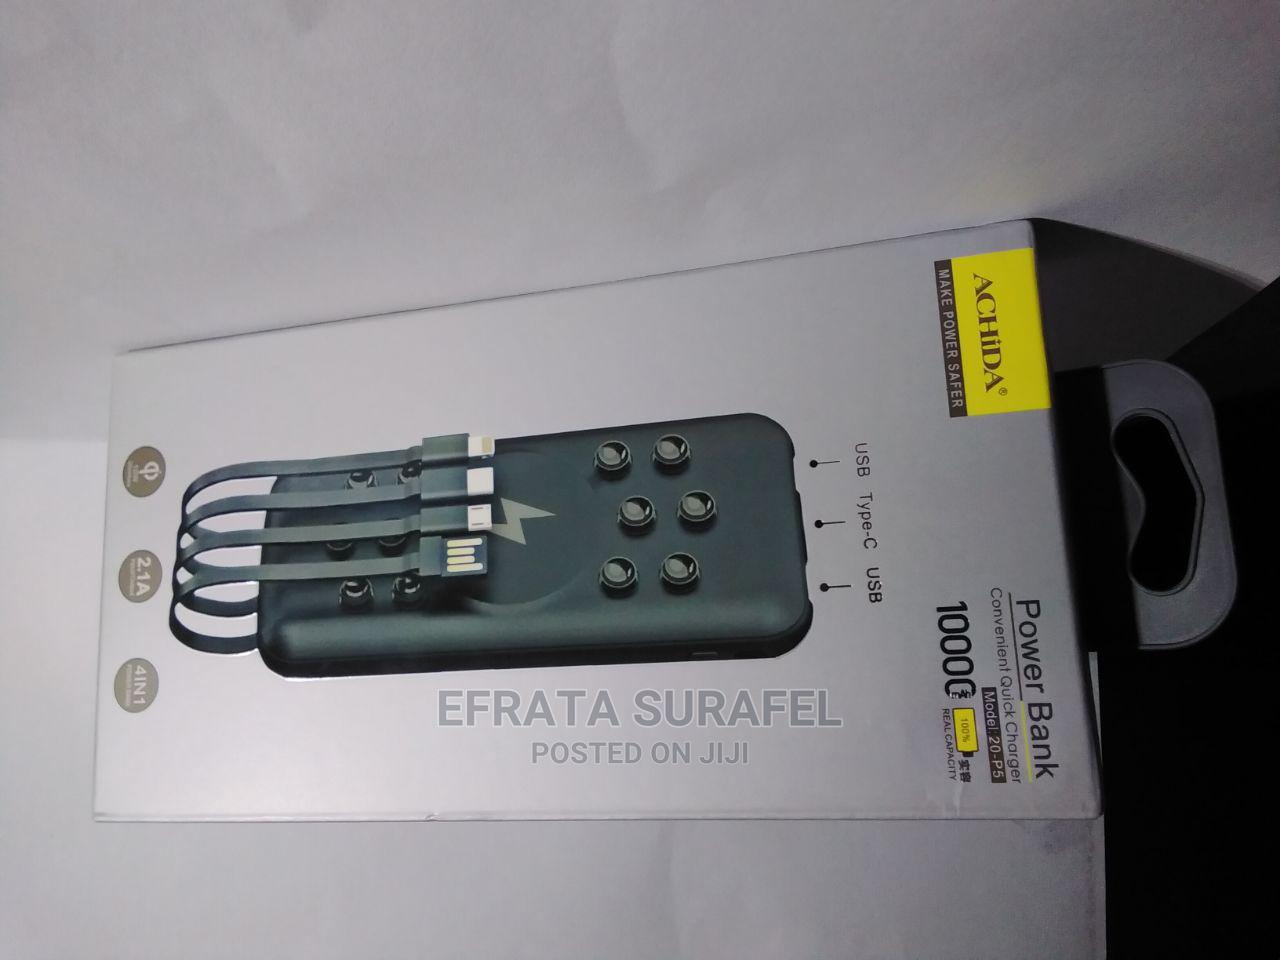 Power Bank   Accessories for Mobile Phones & Tablets for sale in Gullele, Addis Ababa, Ethiopia